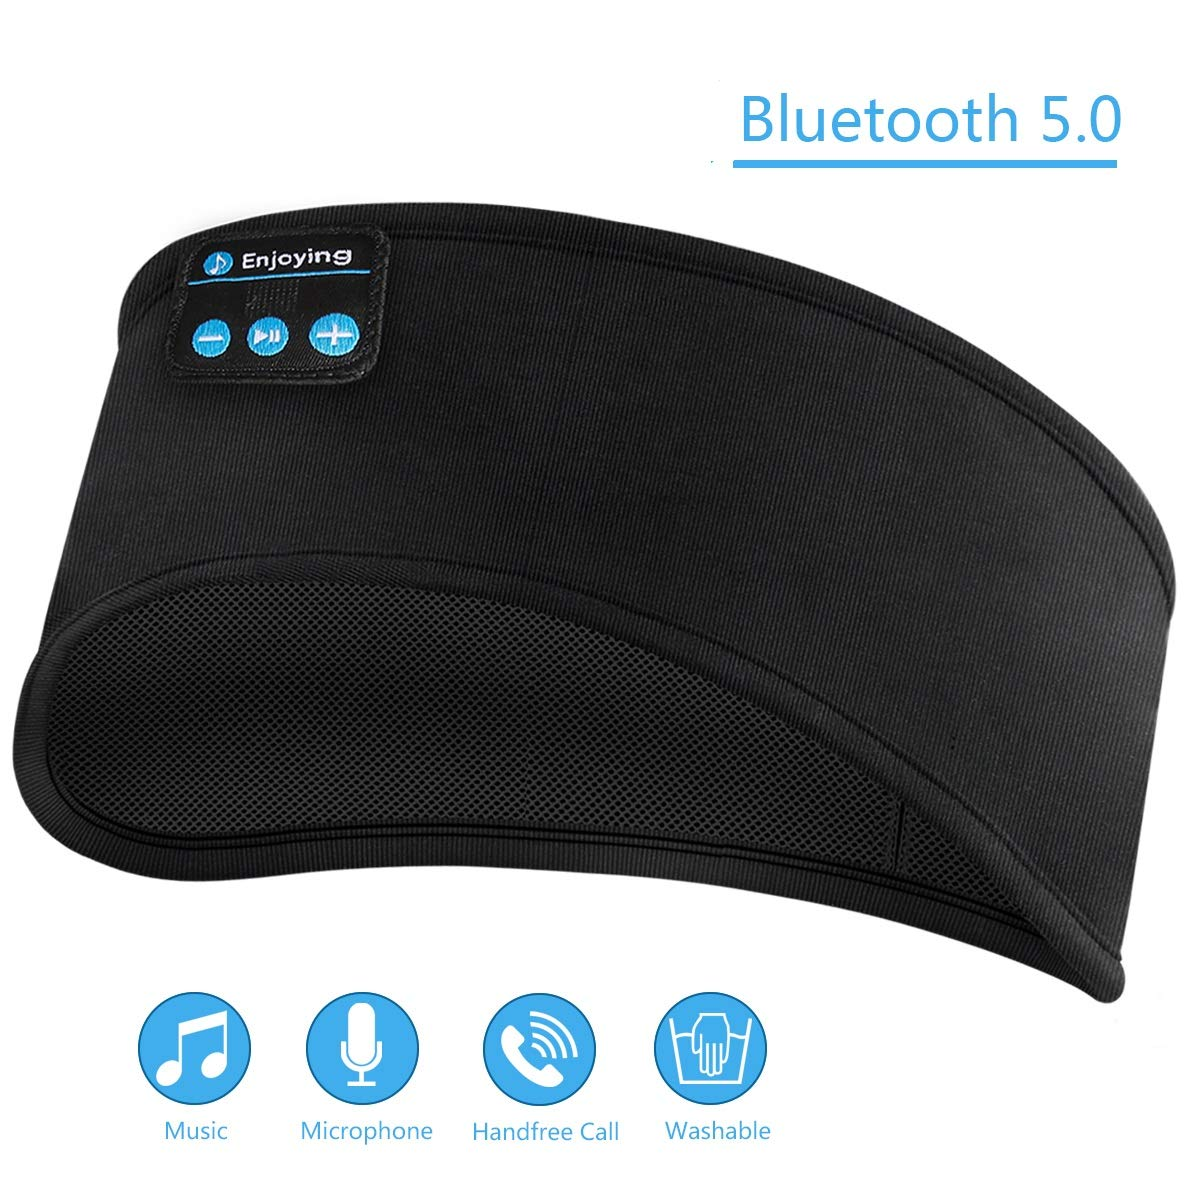 Sleep Headphones Bluetooth, SOONHUA Headband Wireless Headphones for Running with Built-in Microphone Ultra-Thin Speakers,Long Play Time,for Side Sleepers